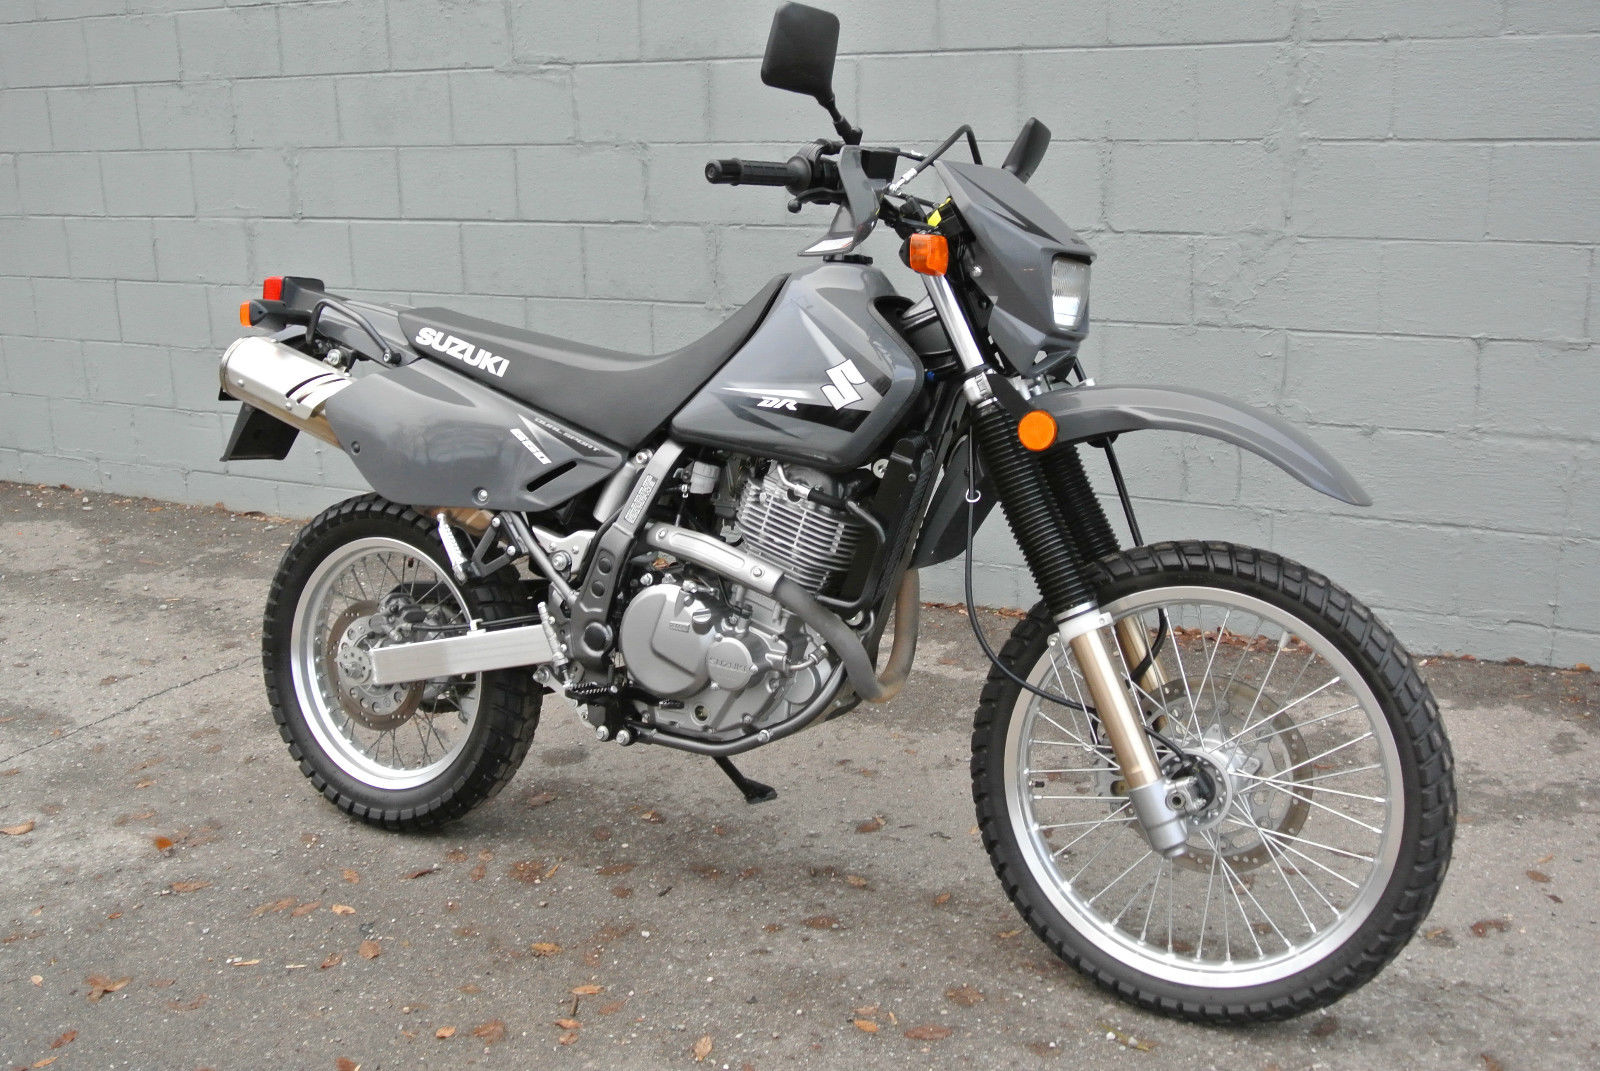 Motorcycle Auctions Near Me >> 2013 Suzuki DR650 SEL DR 650 Dual Sport E- Start DR650 Motorcycle $299 Shipping